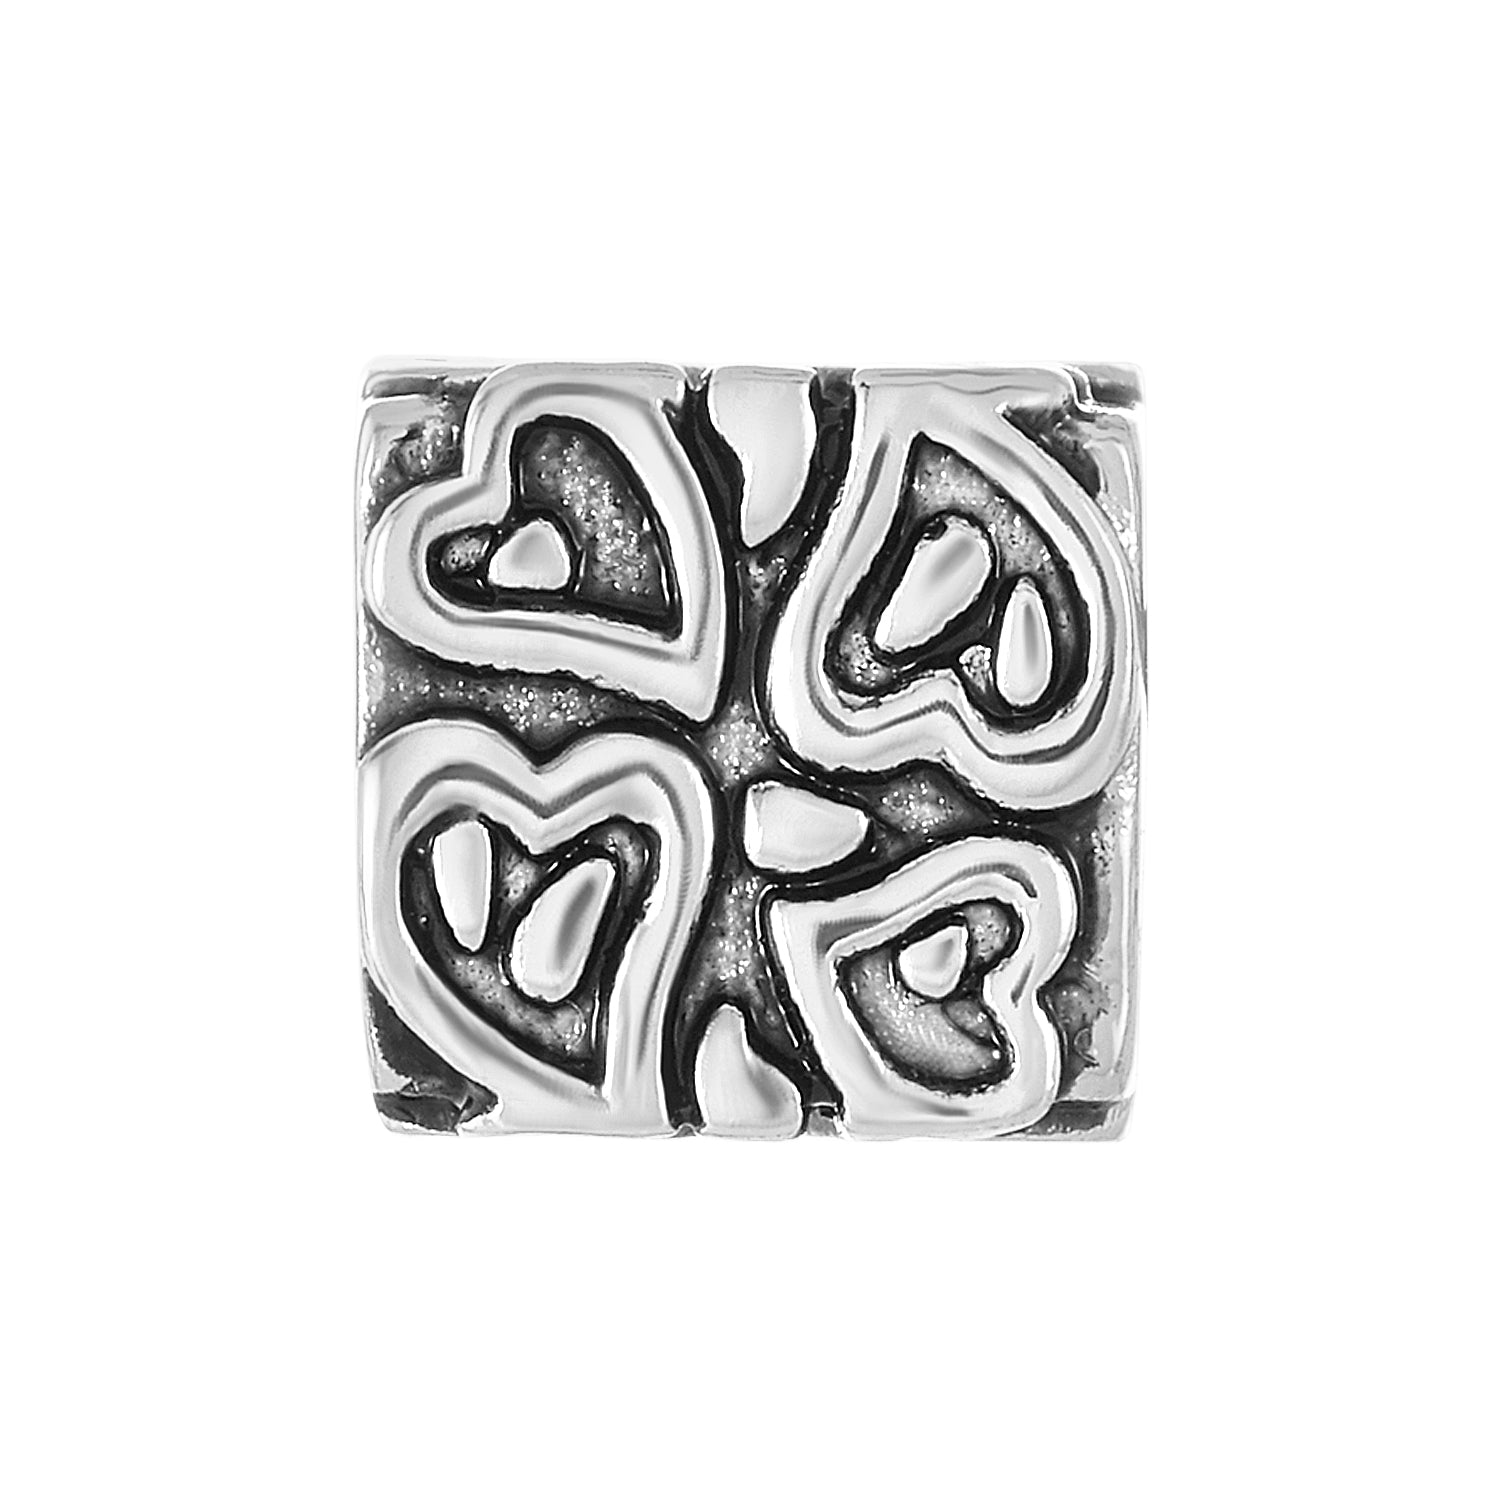 Imprinted Heart Bead